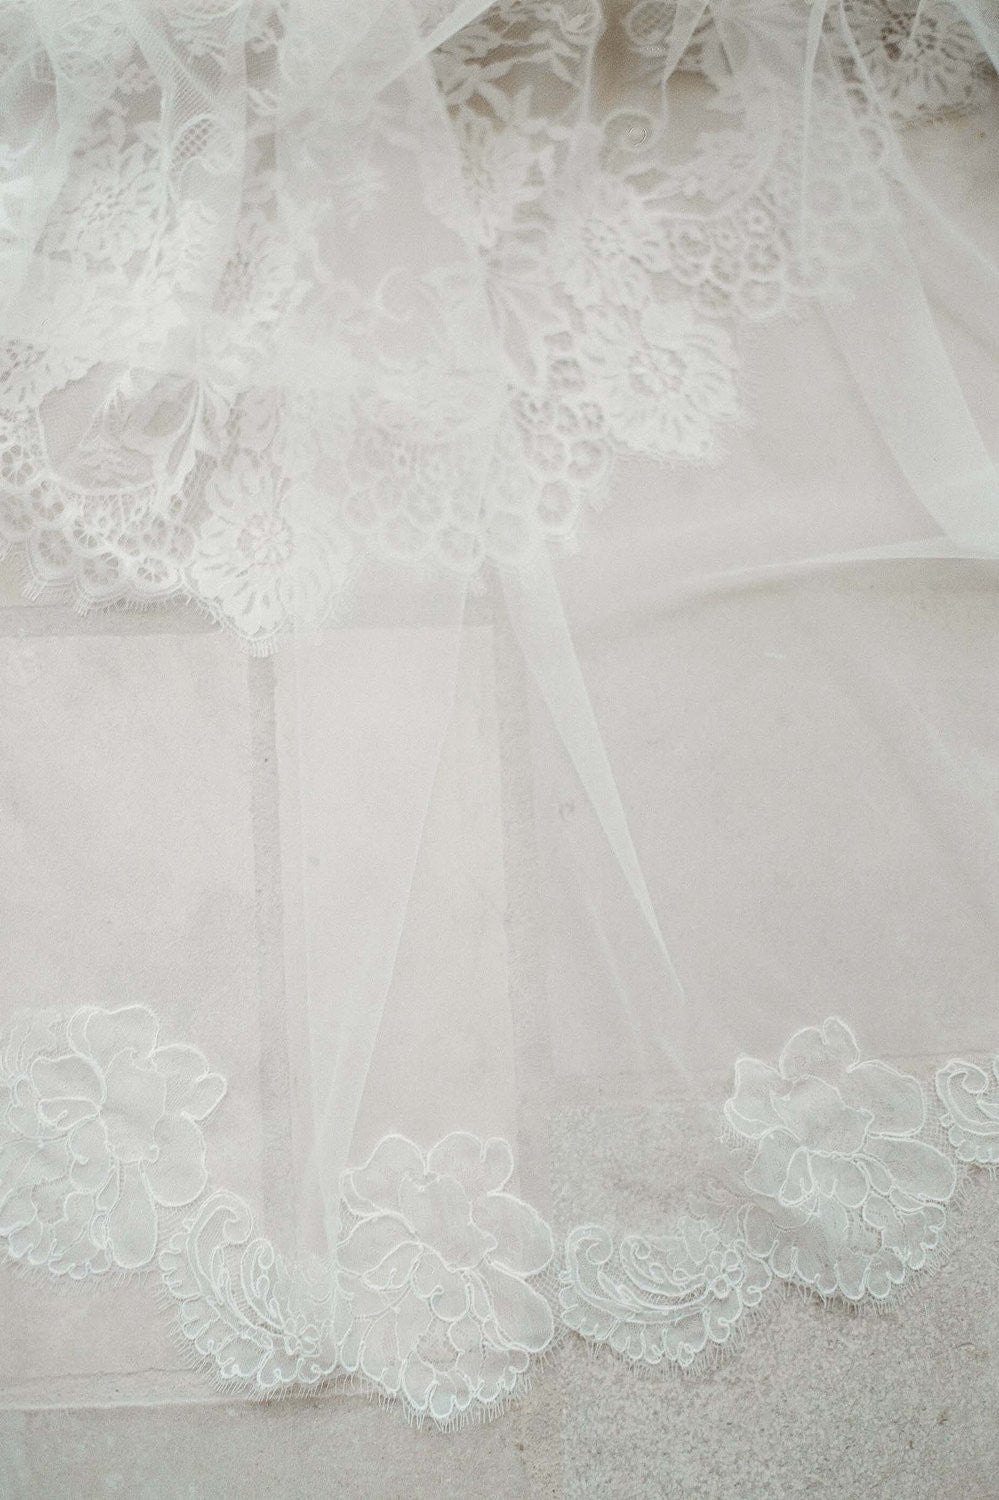 Jacqueline Sheer French lace scallop veil